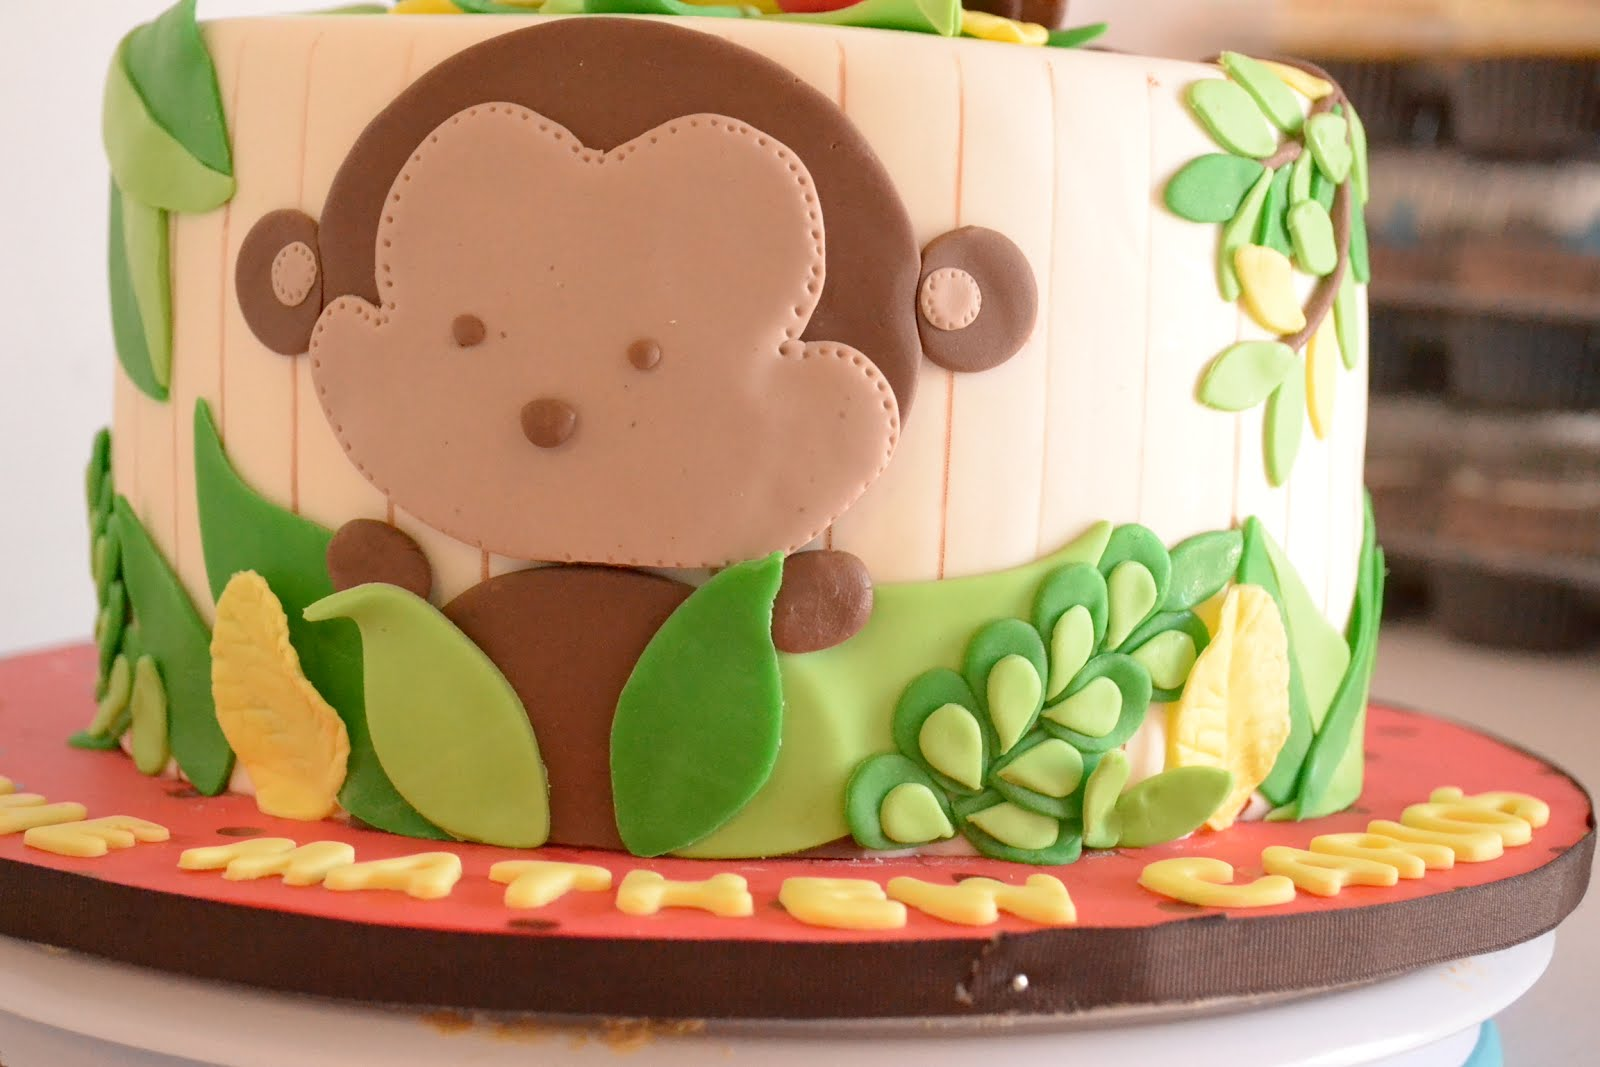 put a cupcake in it safari themed baby shower cake and cuppies